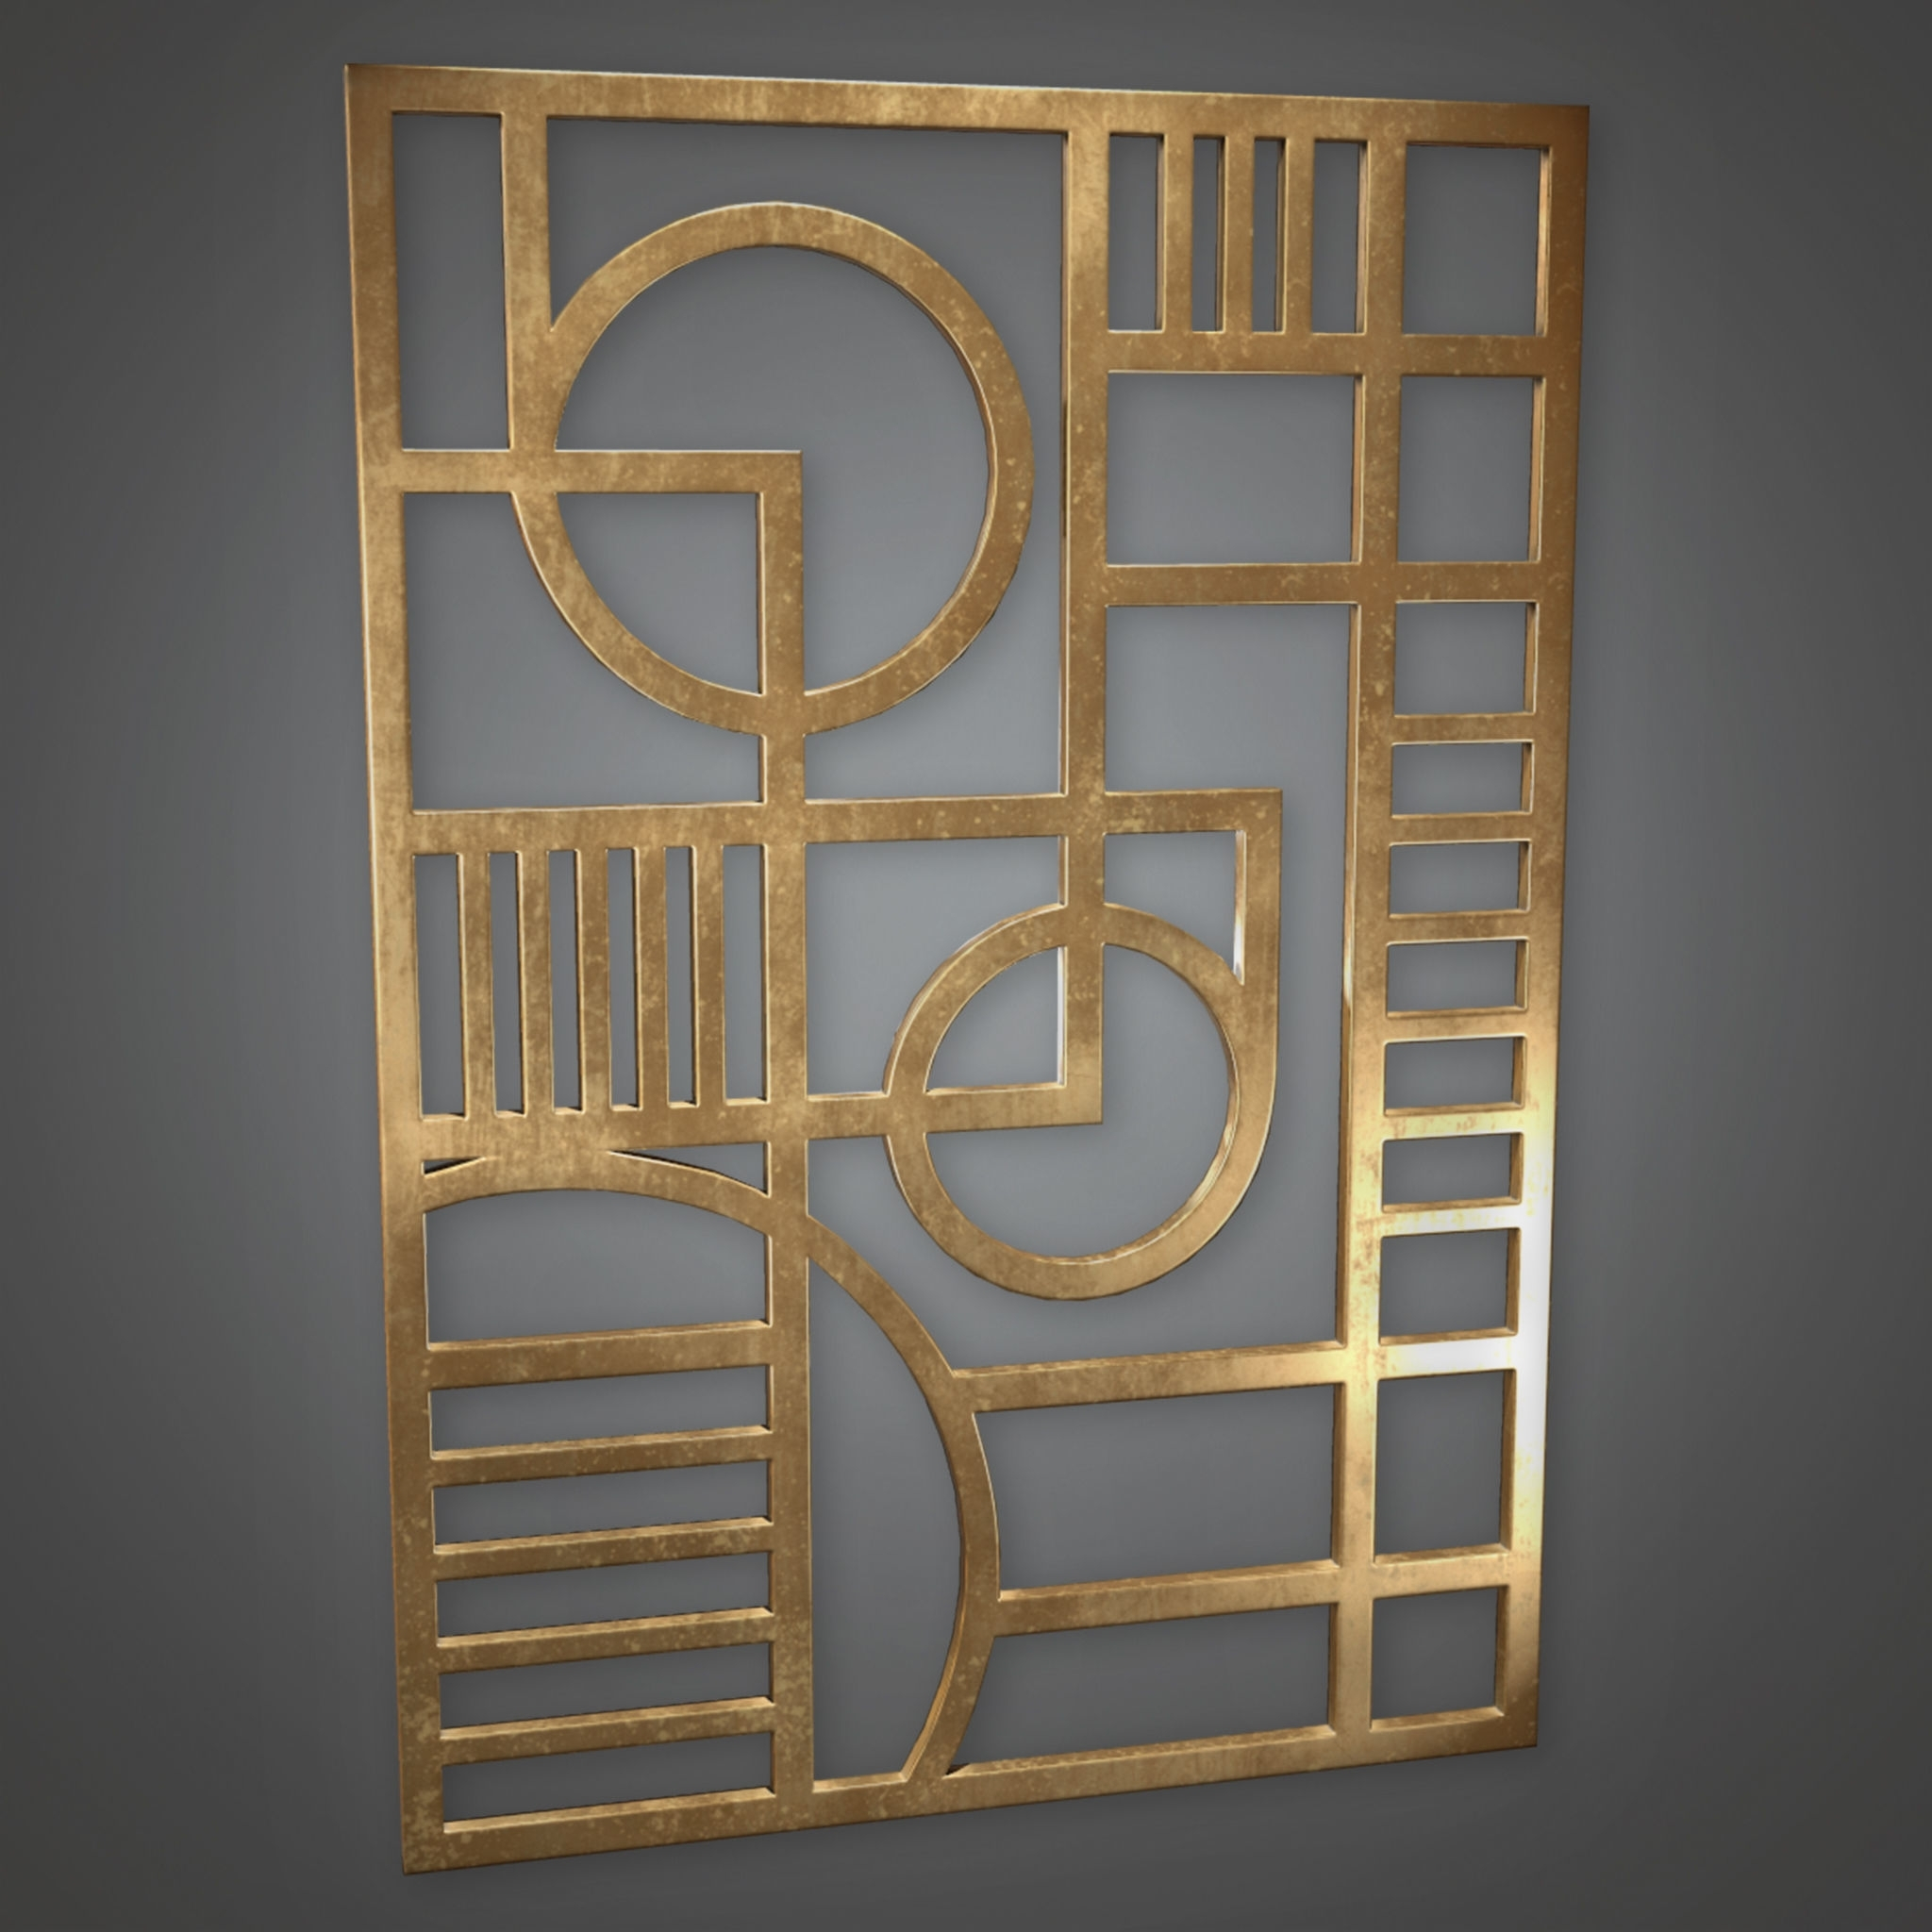 3d Model Wall Art Art Deco – Pbr Game Ready | Cgtrader Regarding Most Recent Art Deco Wall Art (View 15 of 20)